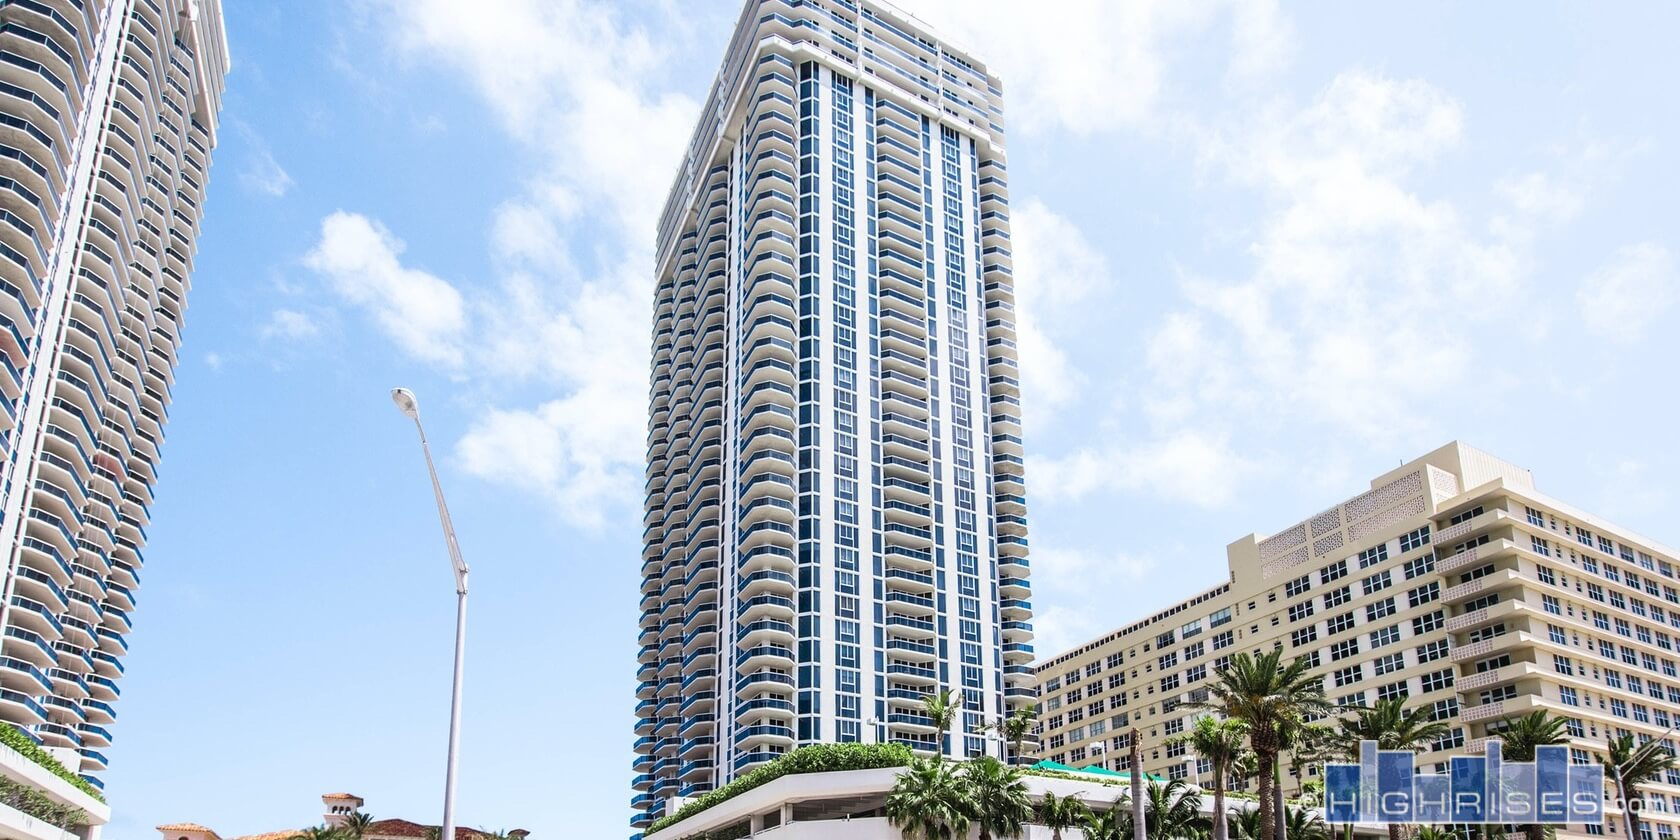 Green Diamond Condos of Miami Beach | 4775 Collins Ave.